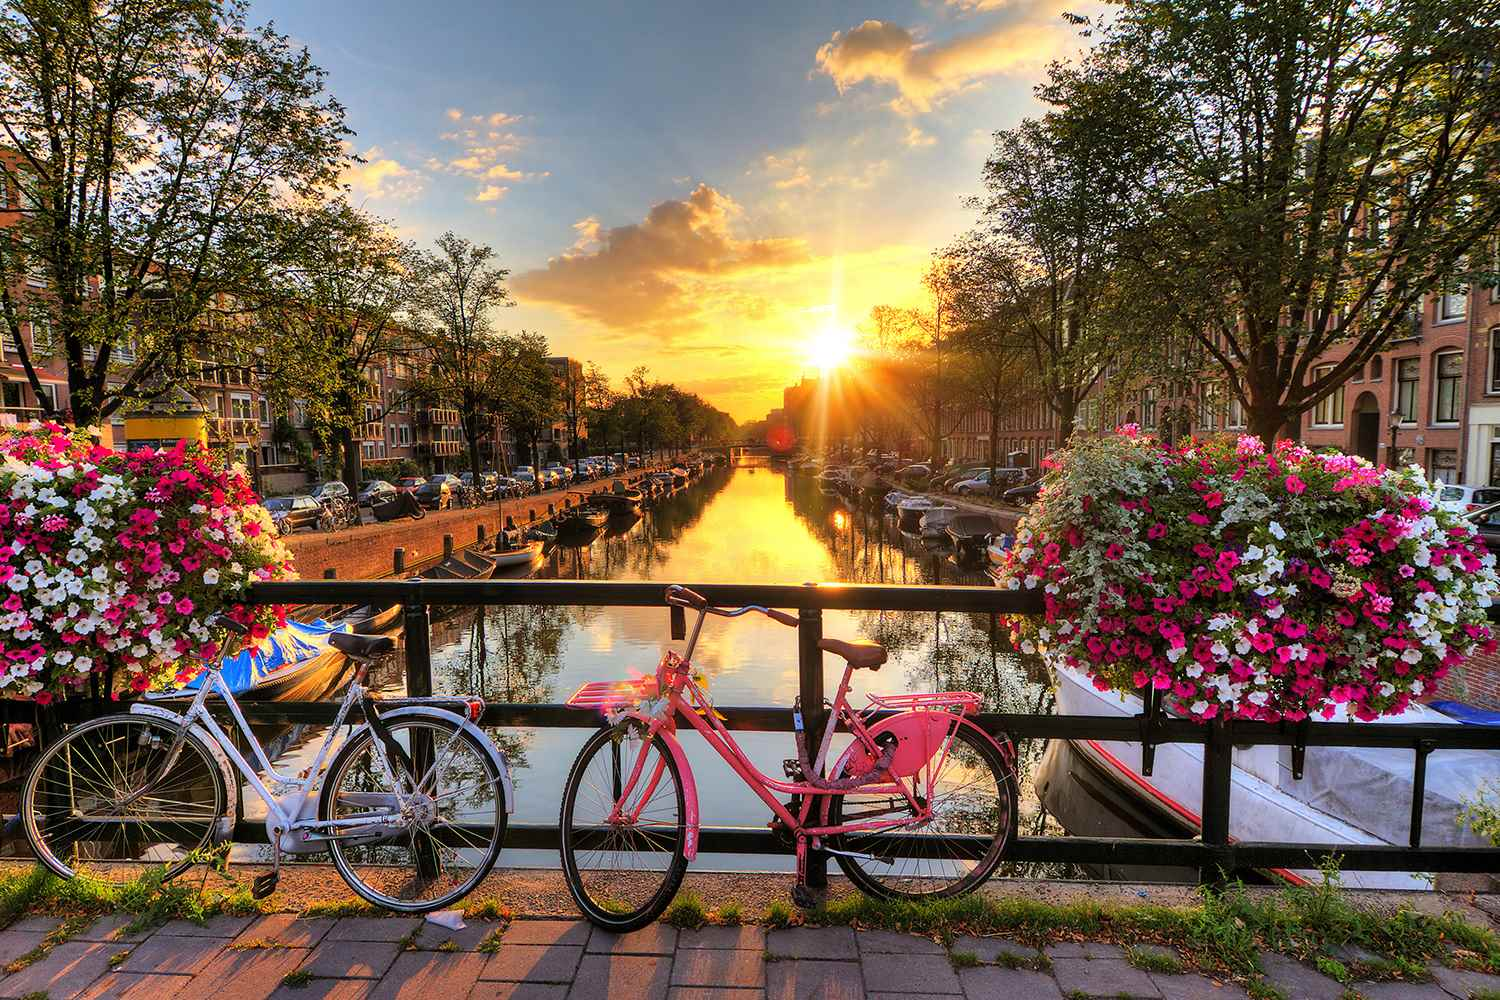 /Assets/CruiseGallery/Thumb/enchantingrhine_NETHERLANDS_Amsterdam_Canals-at-sunrise_ss_189863267_gallery.jpg